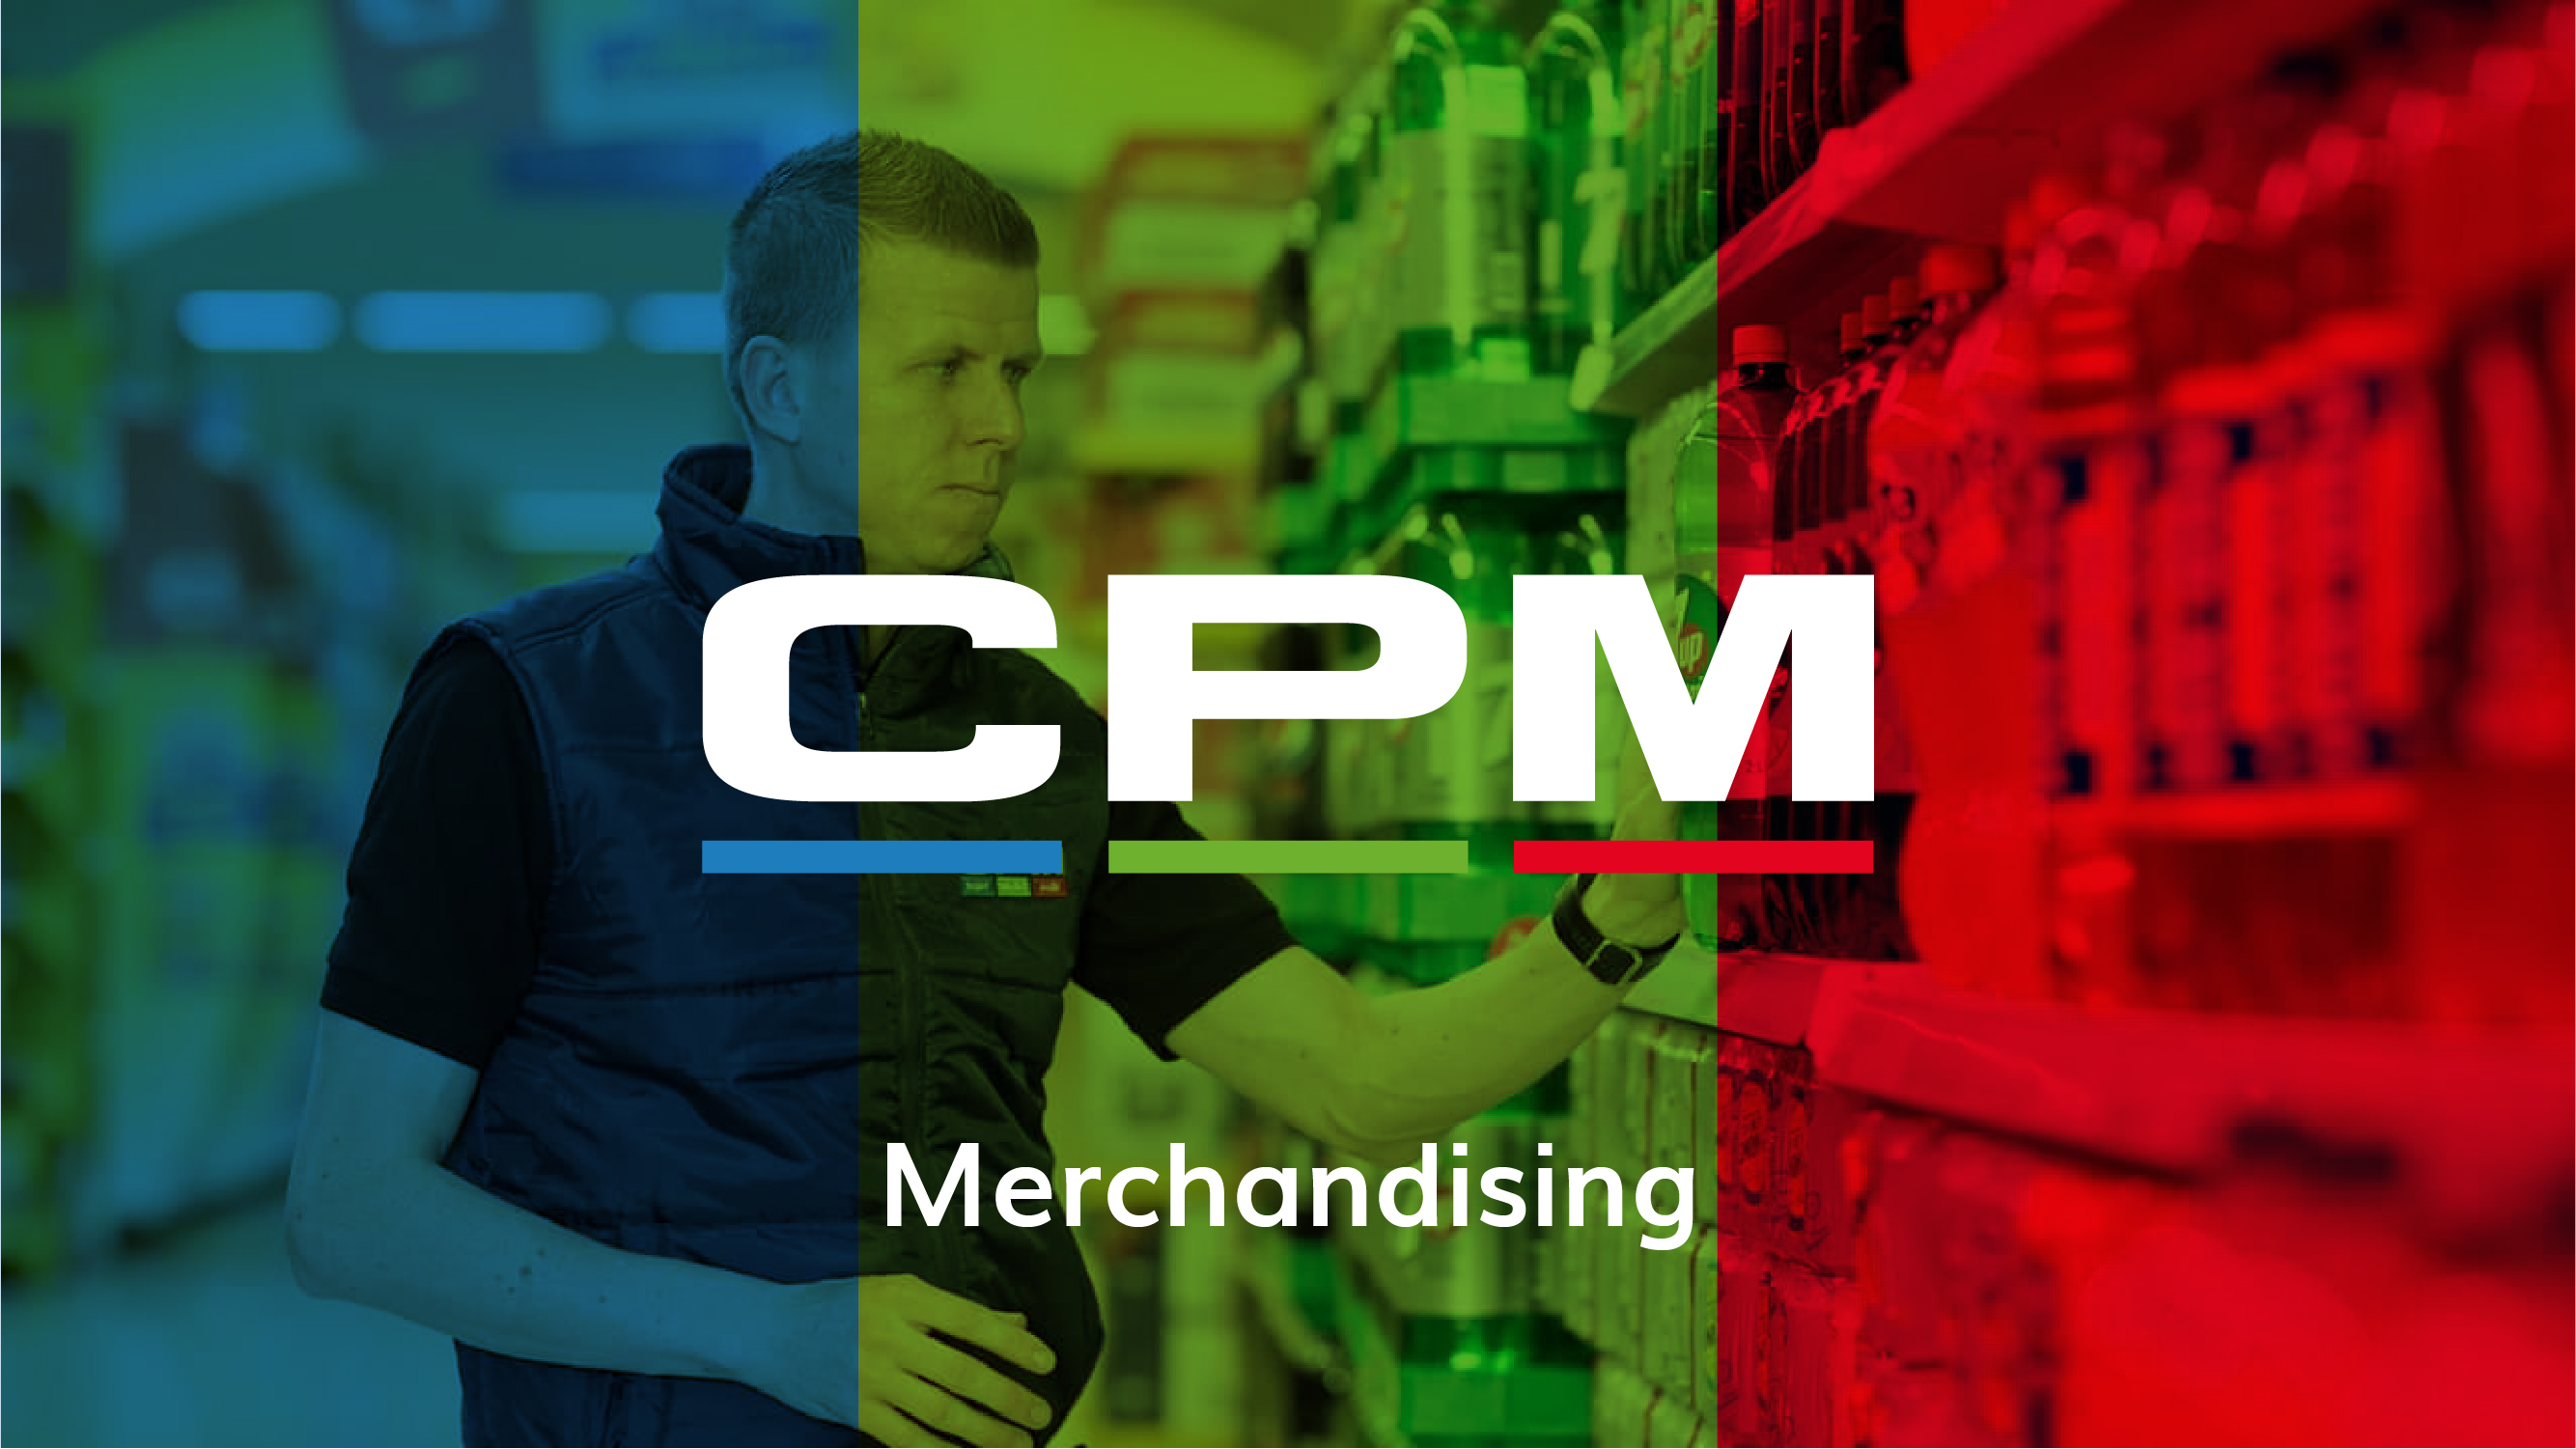 Why do companies need Retail Merchandising services?